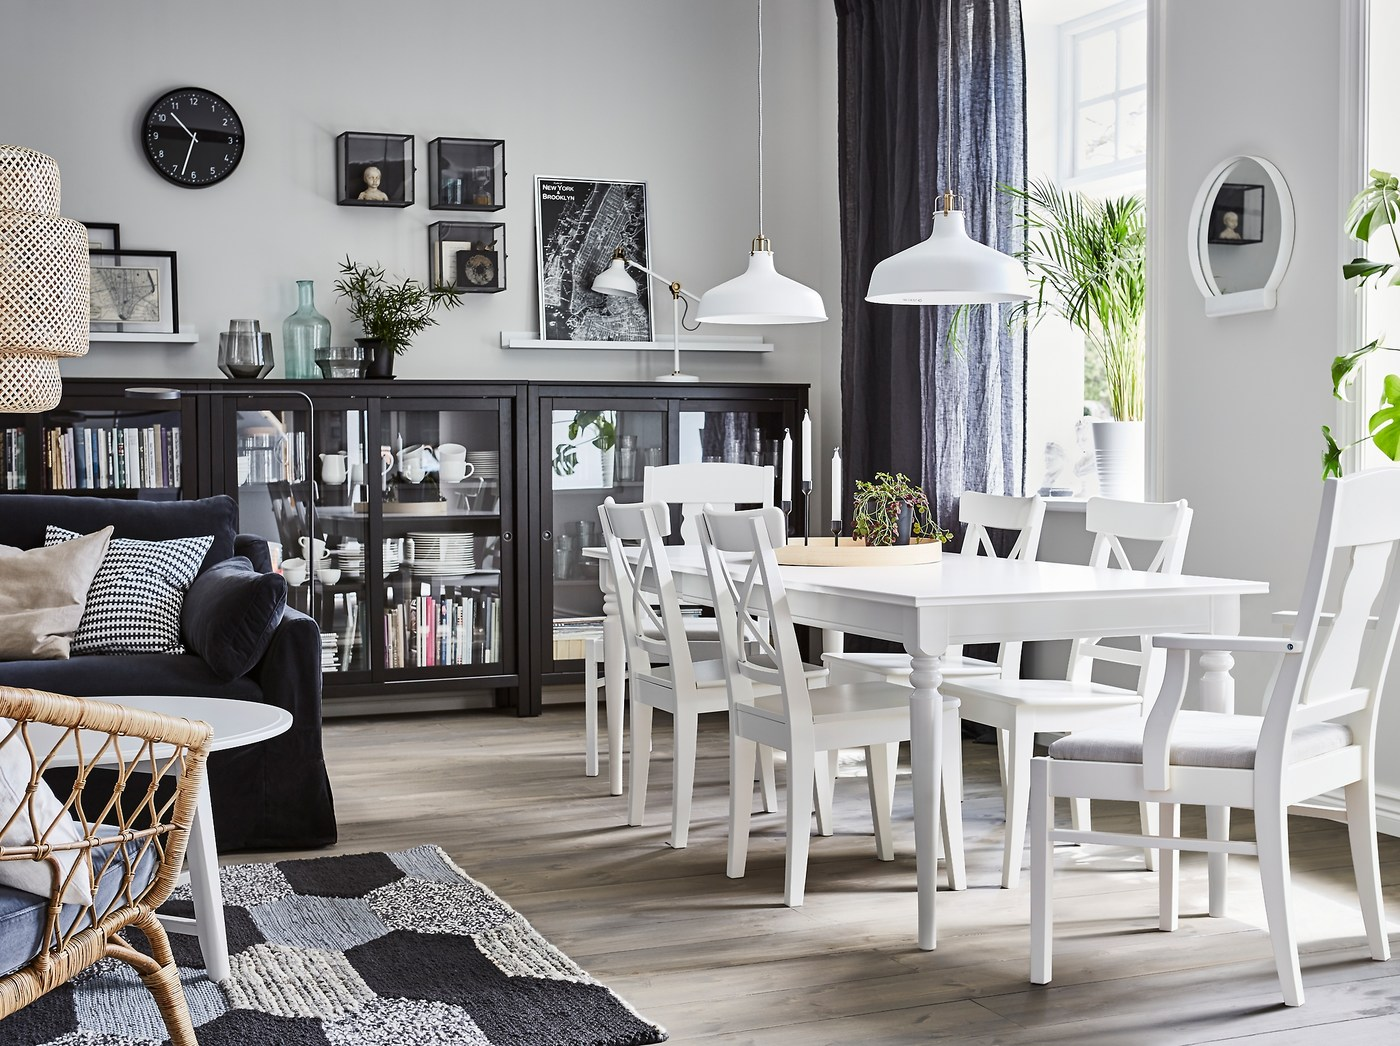 A dining area with white INGATORP extendable dining table and HEMNES black glass door cabinets to store dinnerware.